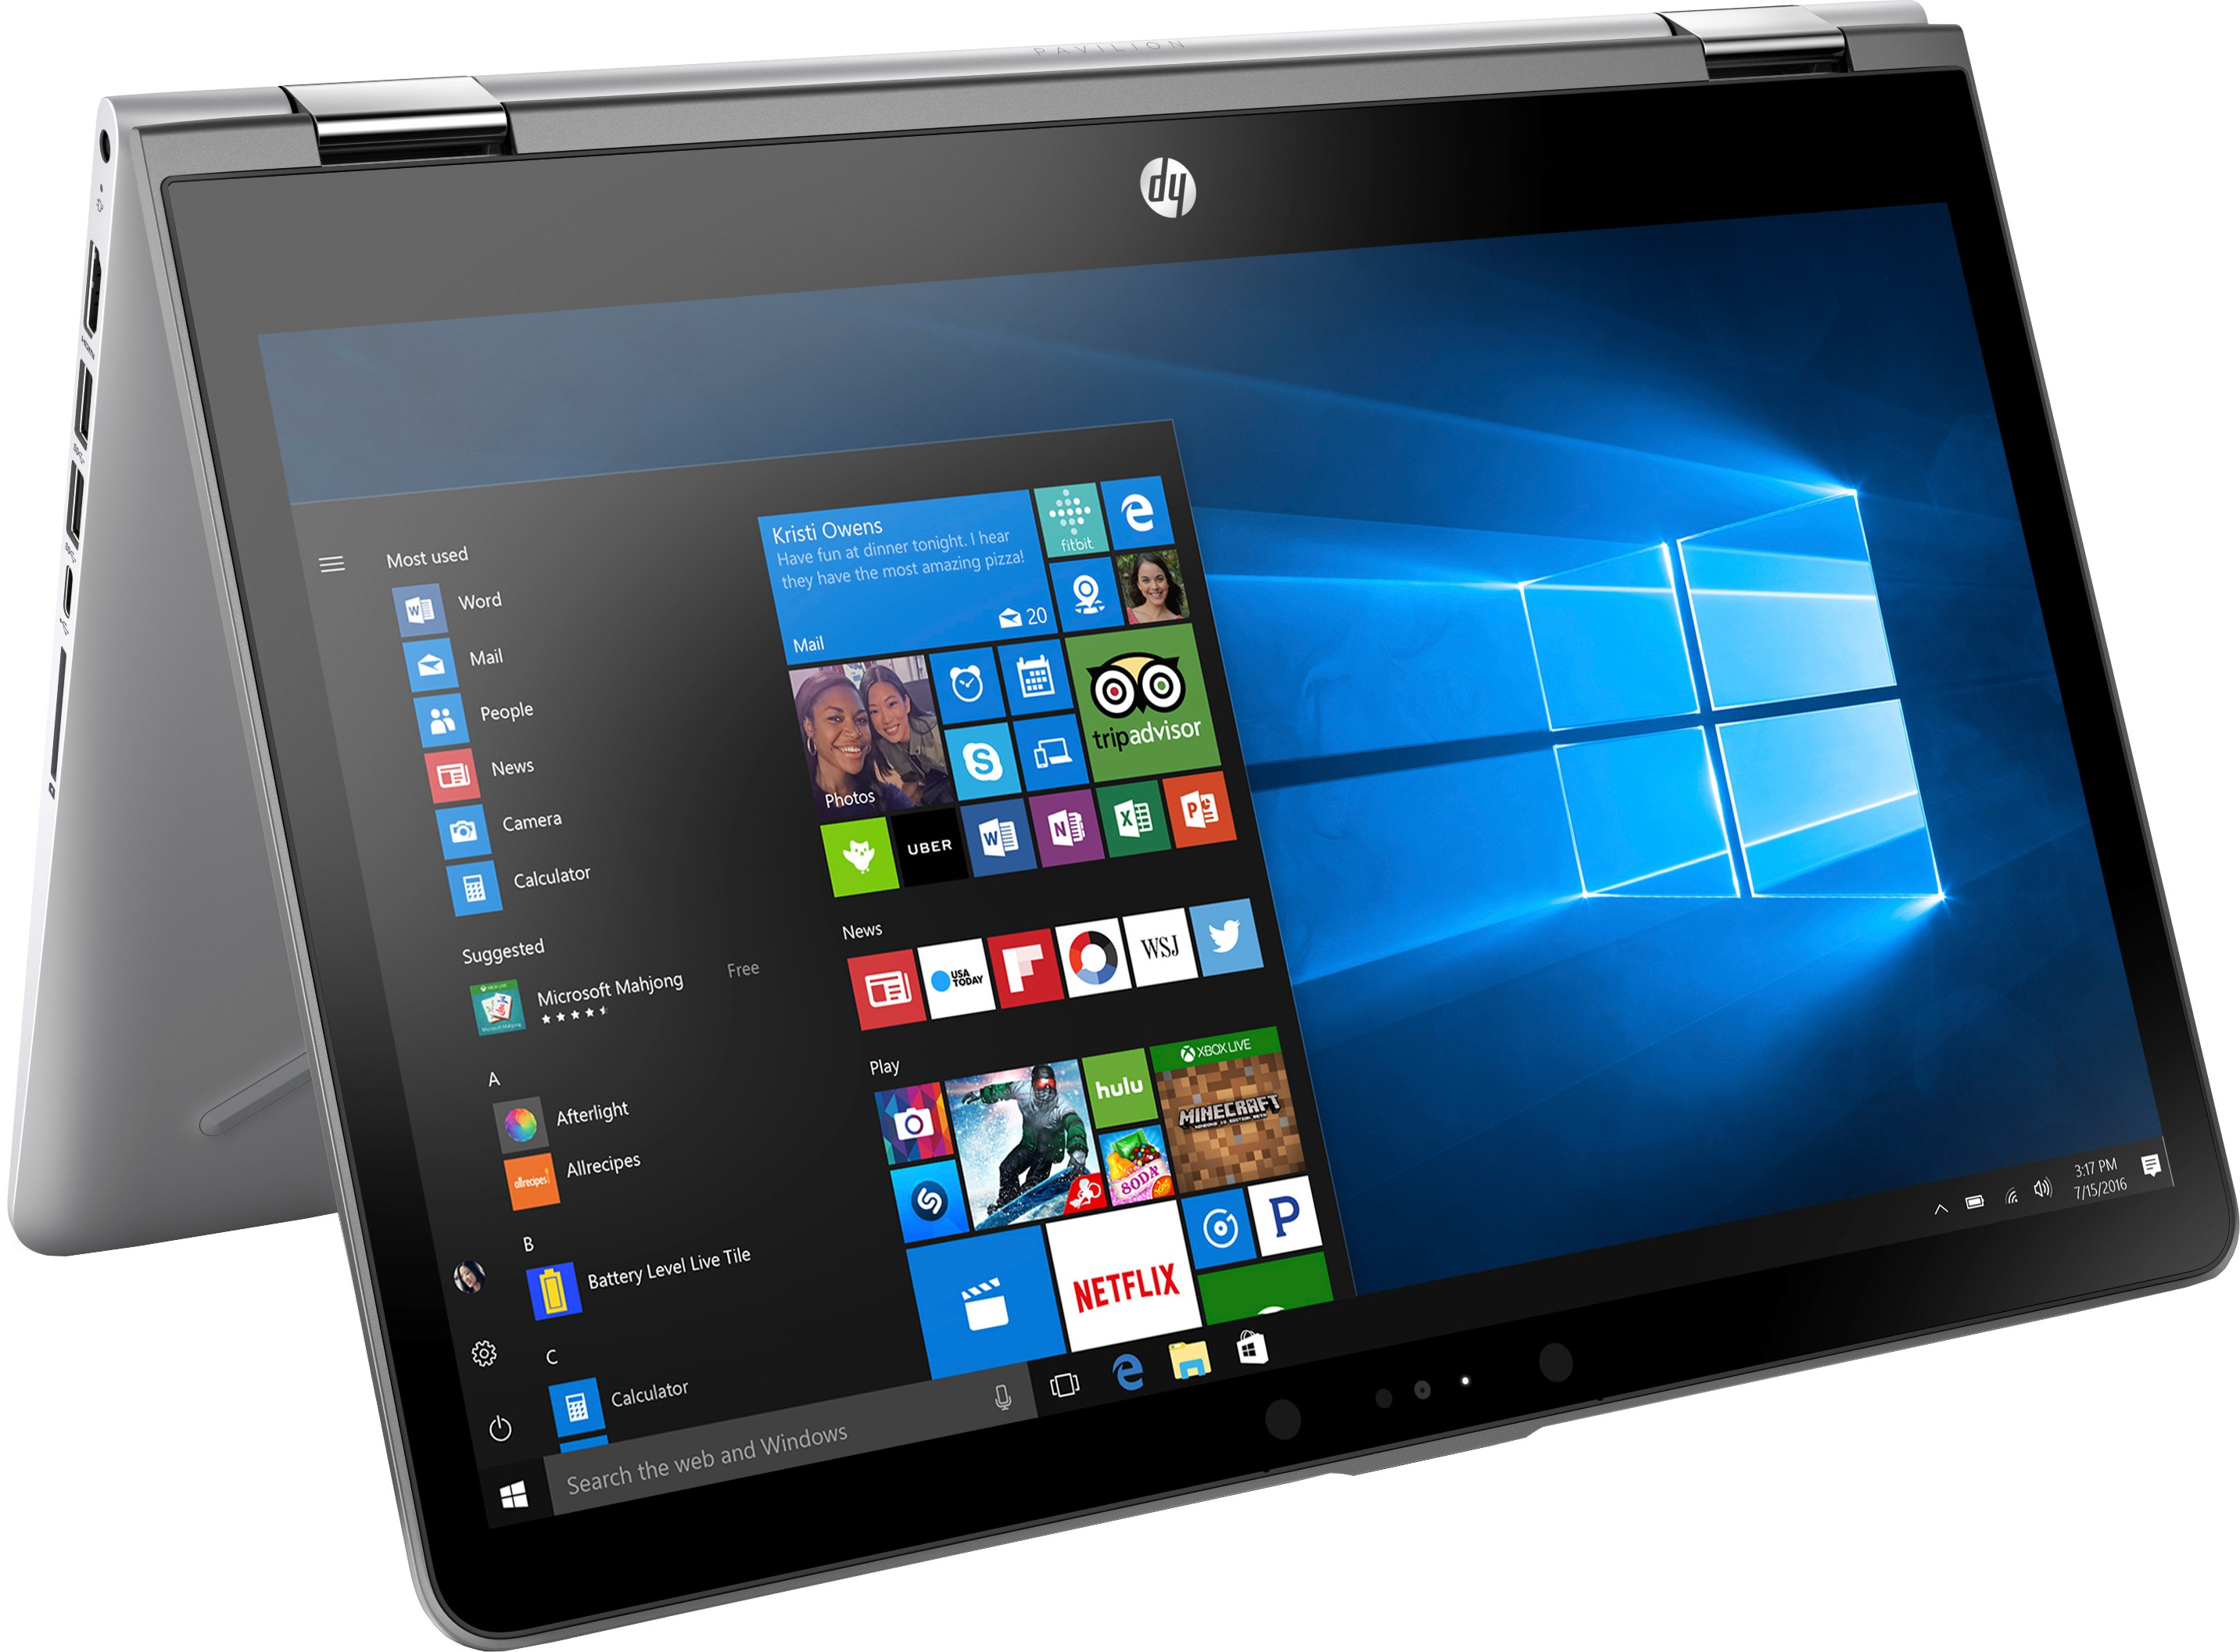 View HP x360 Core i3 7th Gen - (4 GB/1 TB HDD/8 GB SSD/Windows 10 Home/2 GB Graphics) 14��ba075TX 2 in 1 Laptop(14 inch, SIlver, 1.72 kg) Laptop